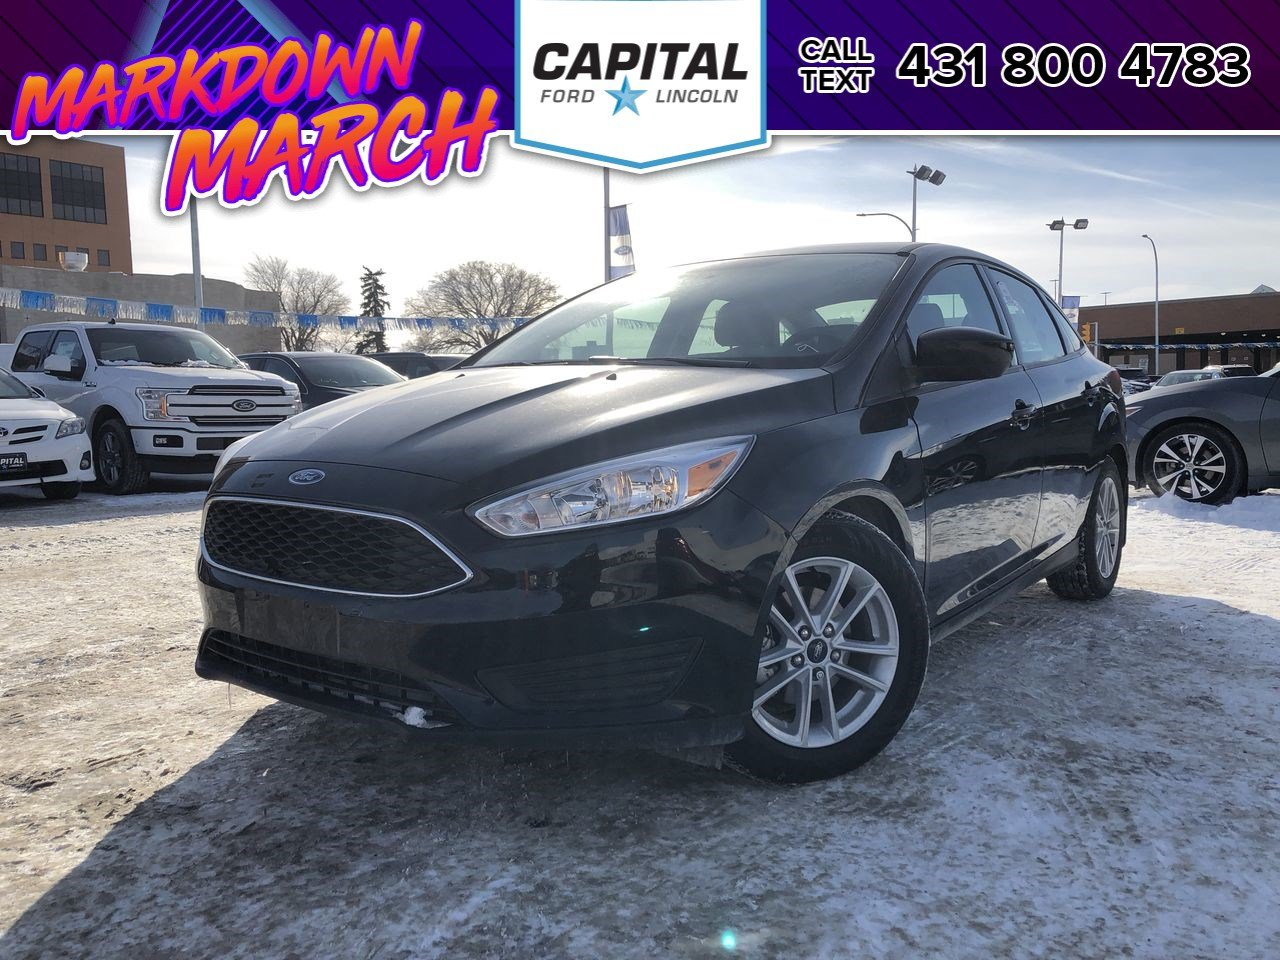 Certified Pre-Owned 2018 Ford Focus SE FORD CERTIFIED PRE-OWNED 2.9% OAC